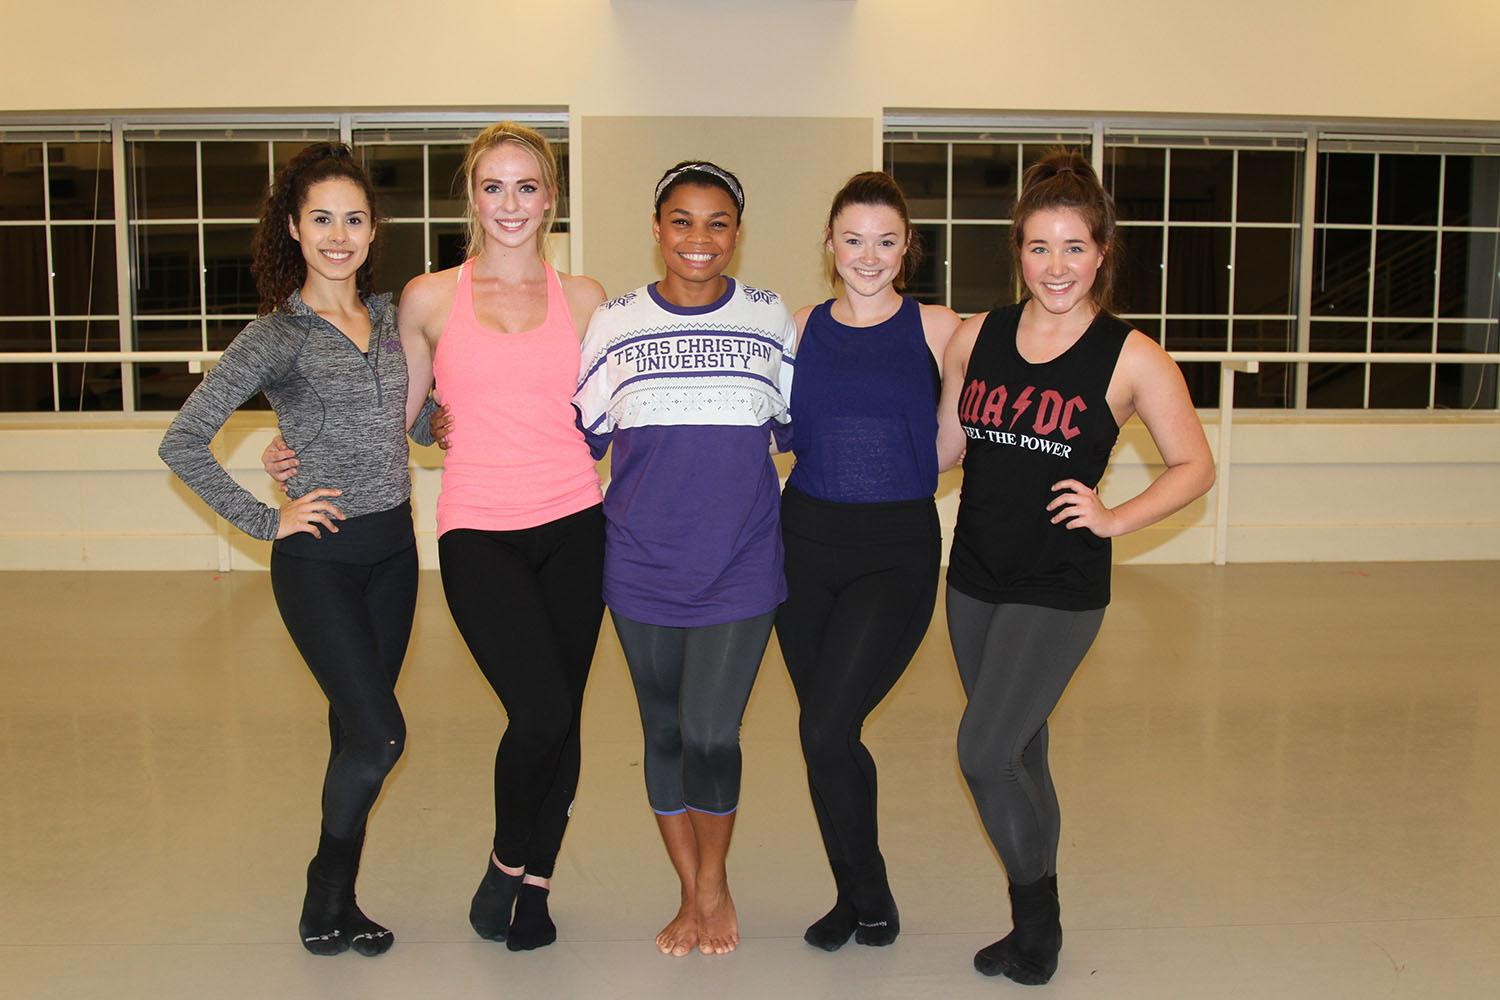 Krista Kee (middle) and her cast members (from left: Leah Williams, Erin Sauerhage, Karly Wilkins, and Rebecca Carwile)